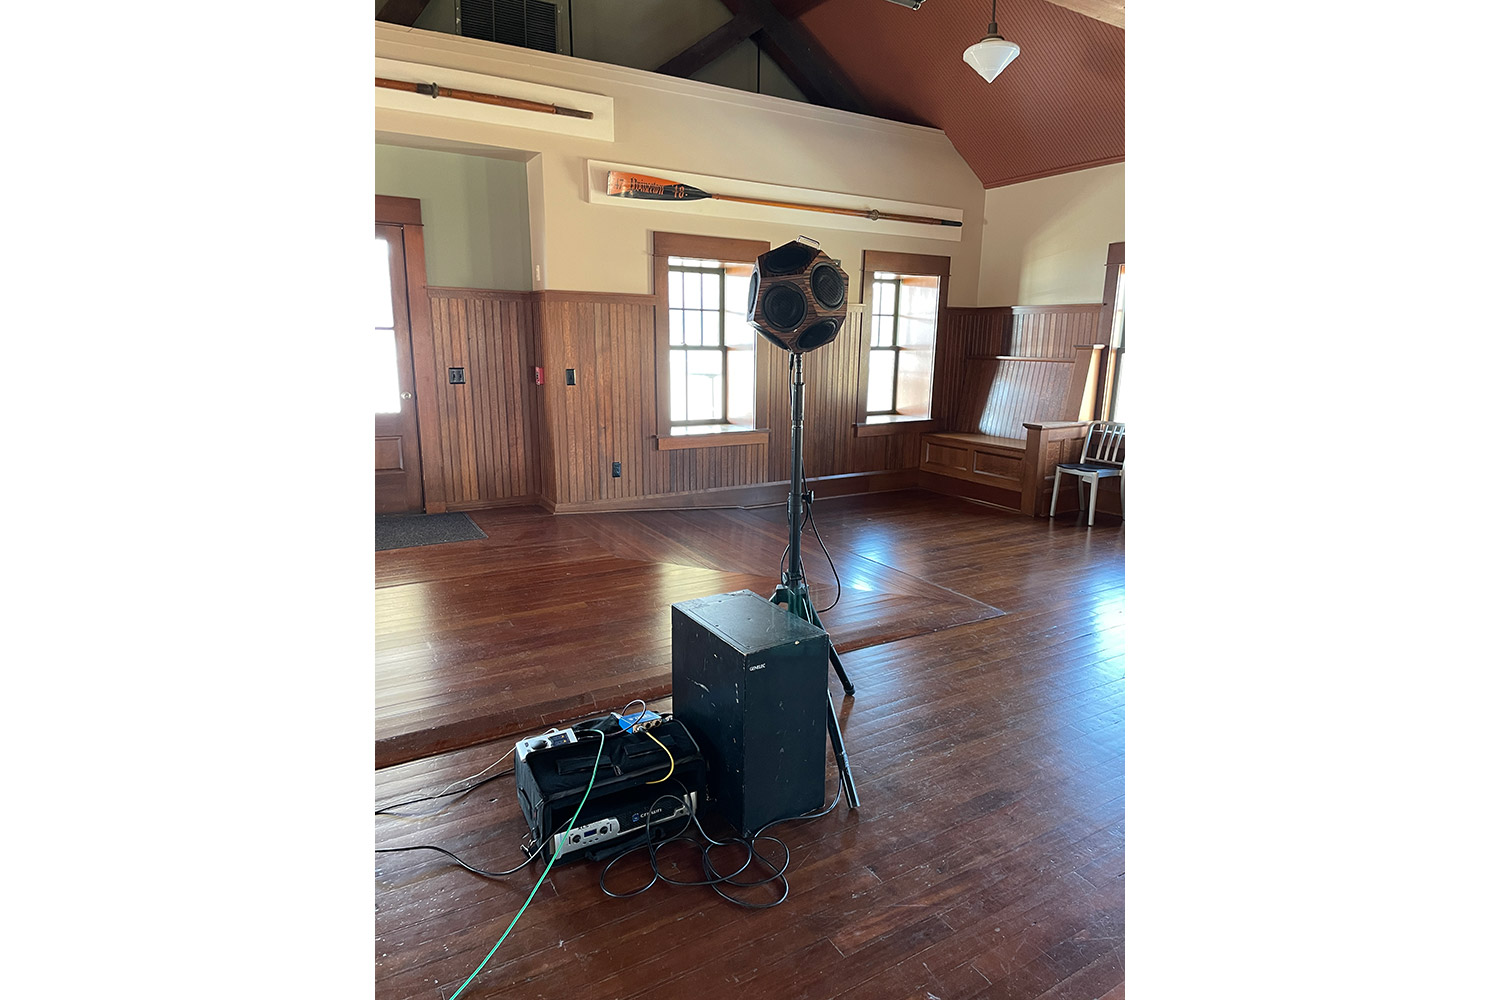 WSDG performed acoustic measurements at the Cornell Boathouse at Marist College.